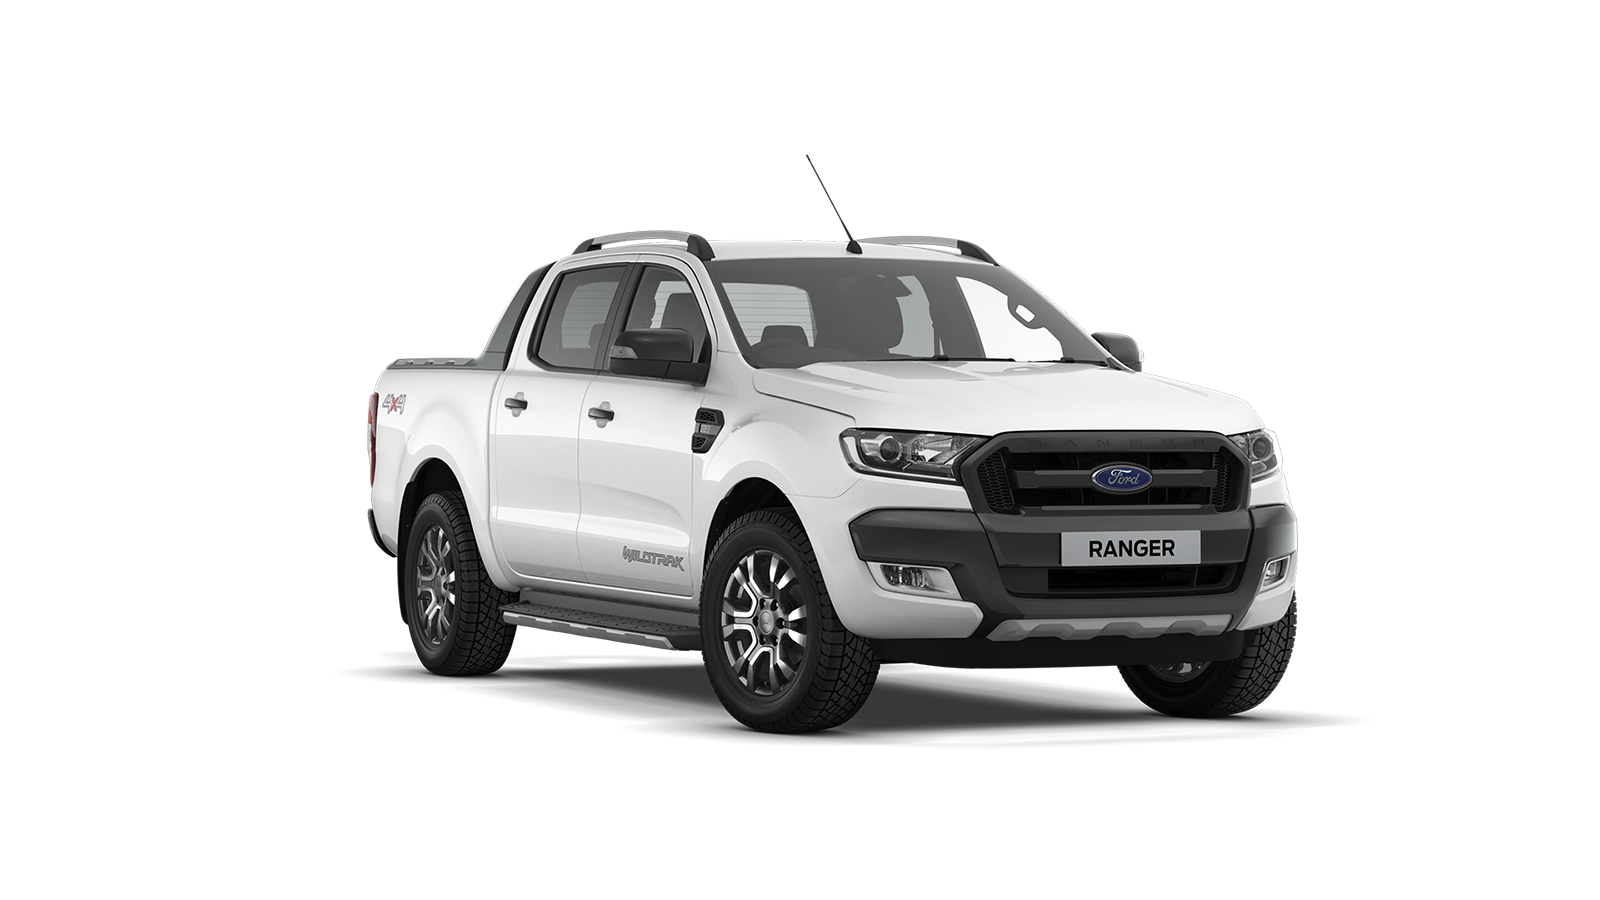 RANGER Wildtrak Double Cab in Frozen White